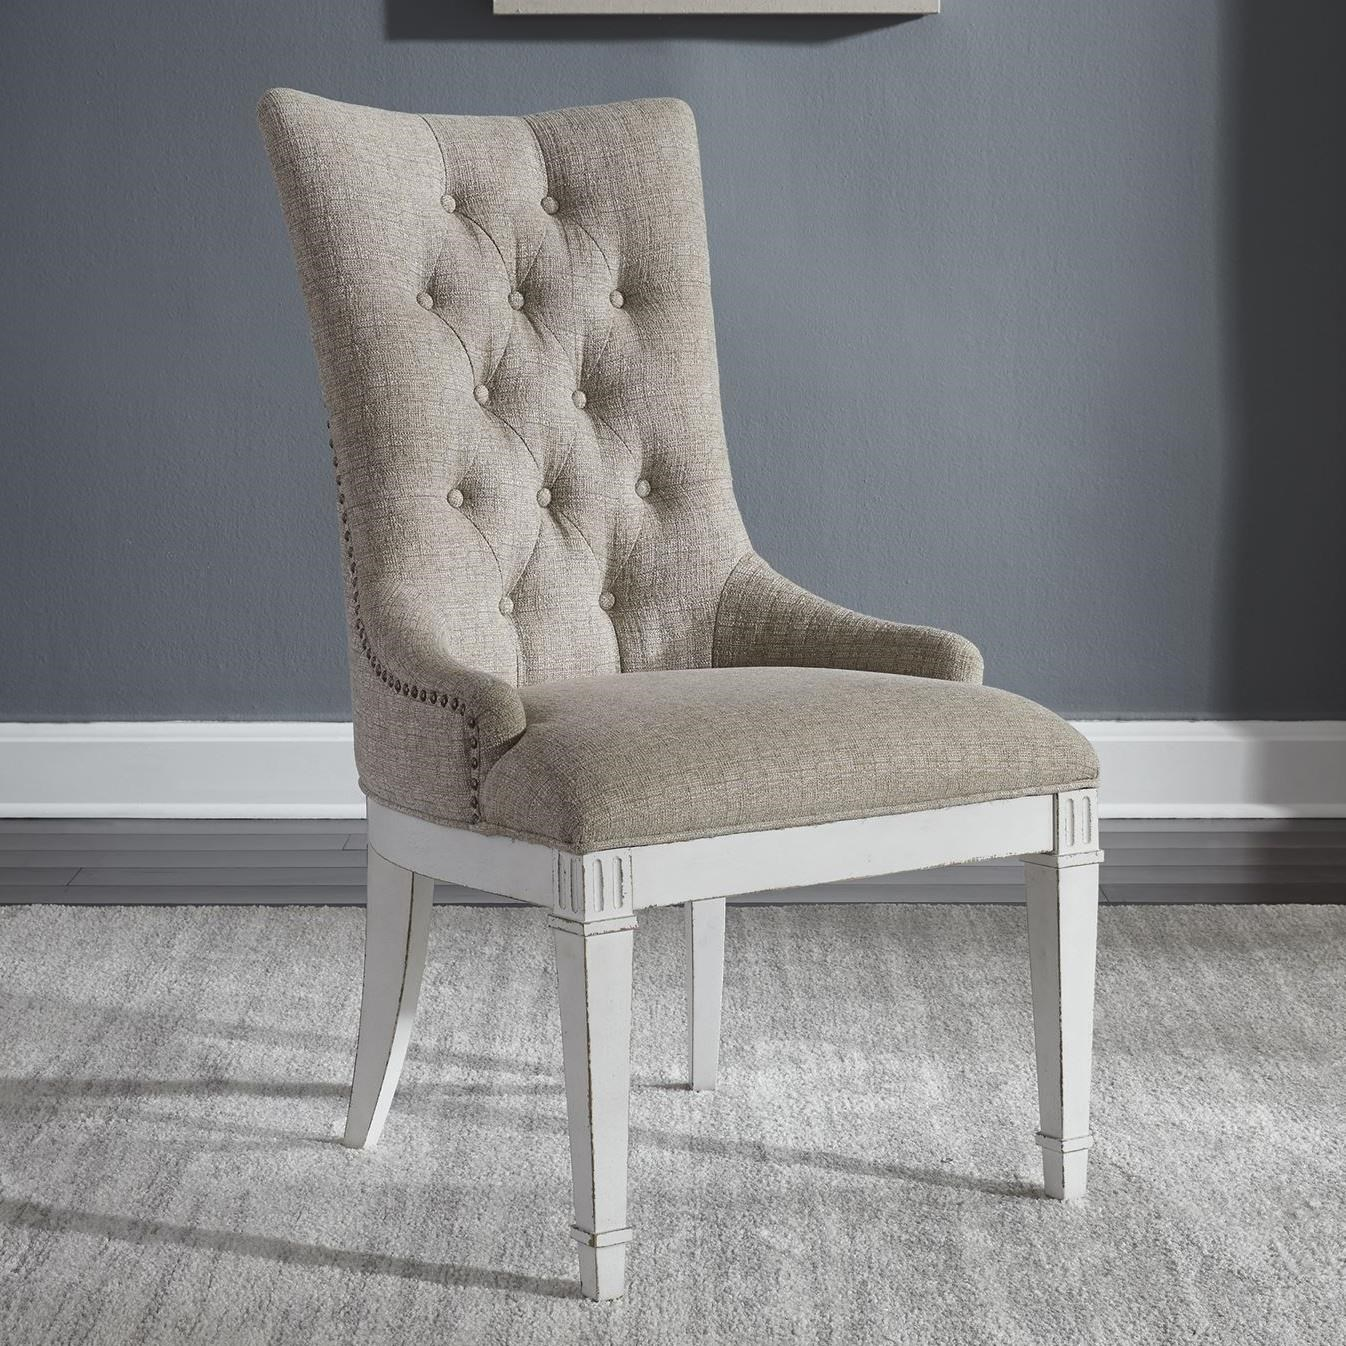 Abbey Park Hostess Chair by Liberty Furniture at Esprit Decor Home Furnishings